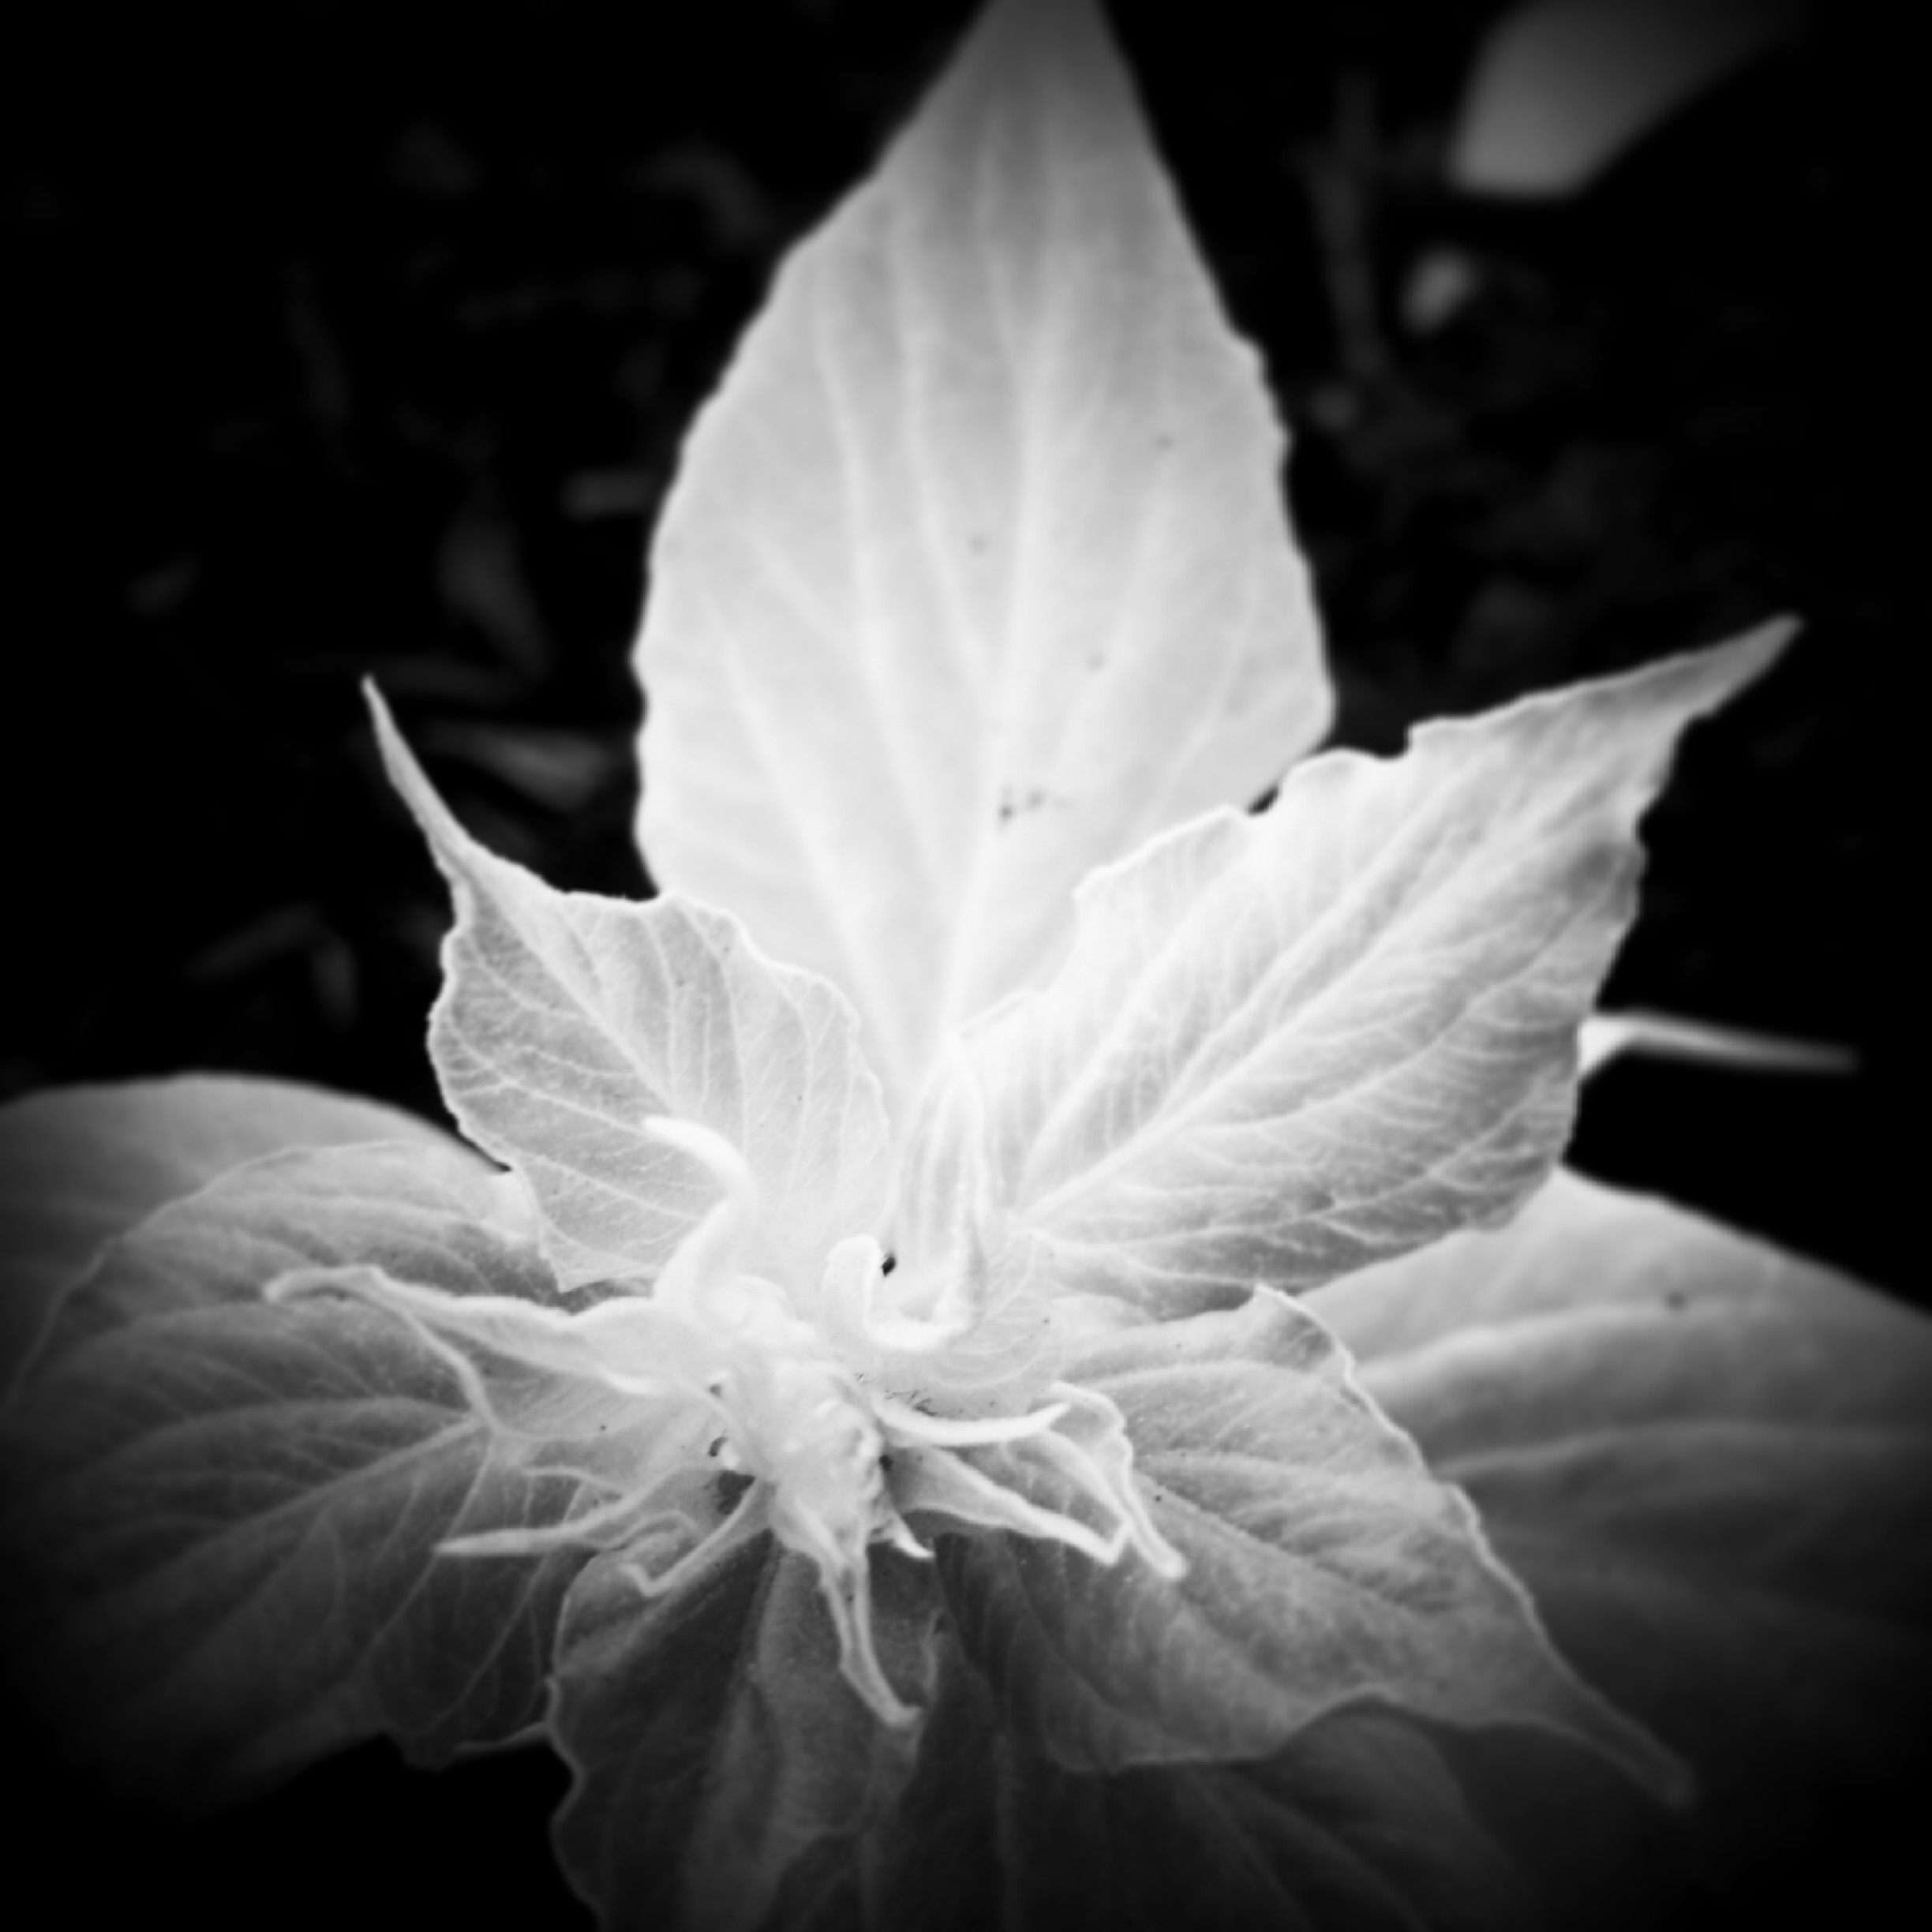 Flower Leaf in Black and White